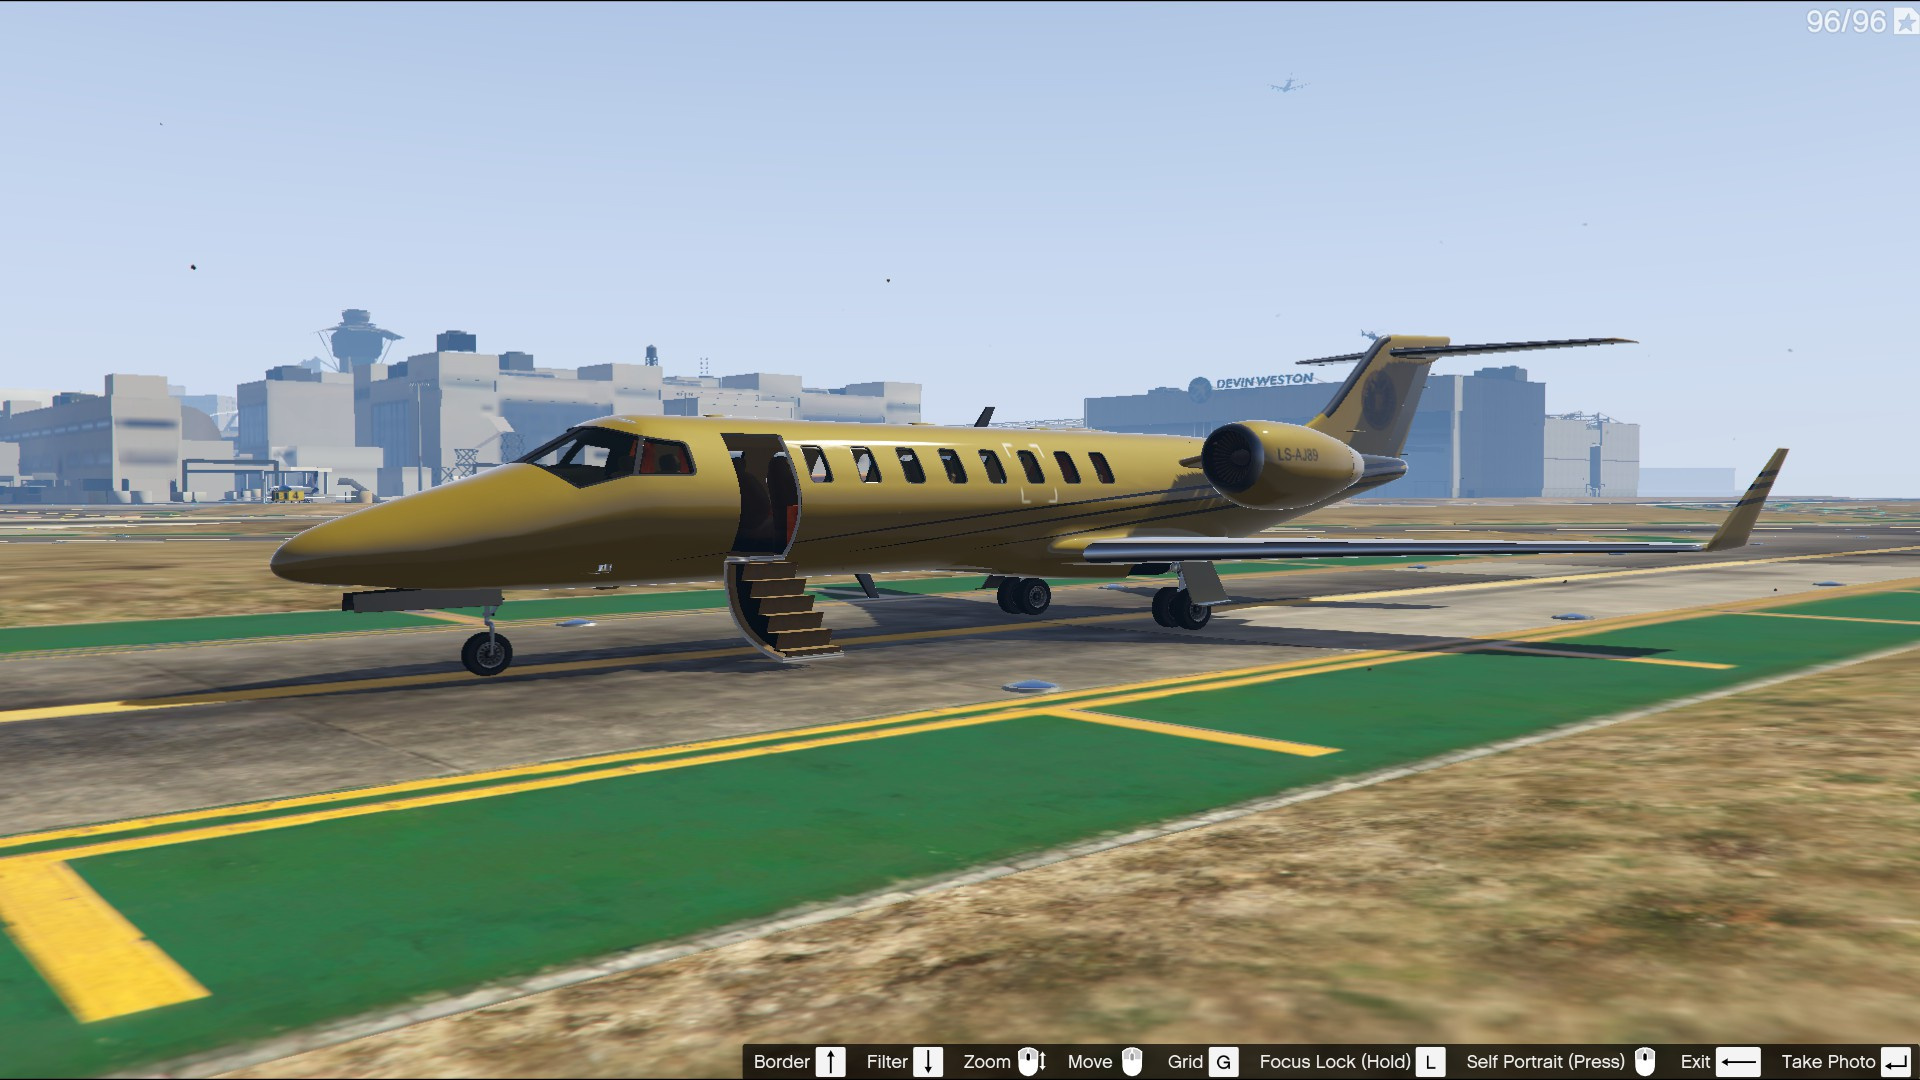 Jet Privato Gta 5 : K gold luxor private jet with new interior gta mods